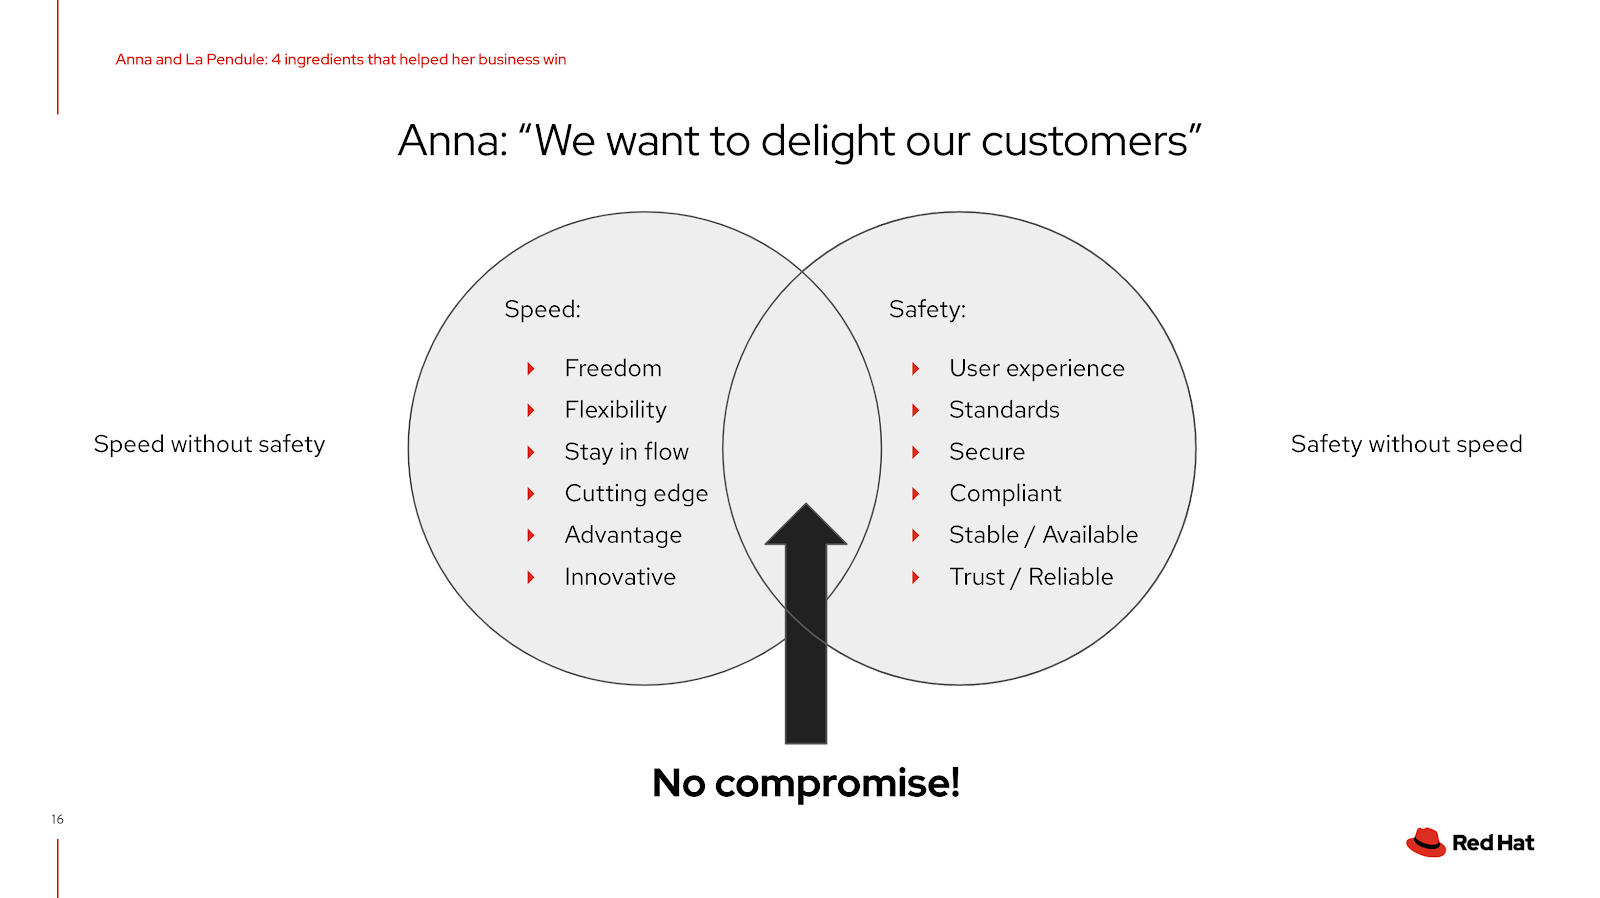 No compromise; we want to delight our customers